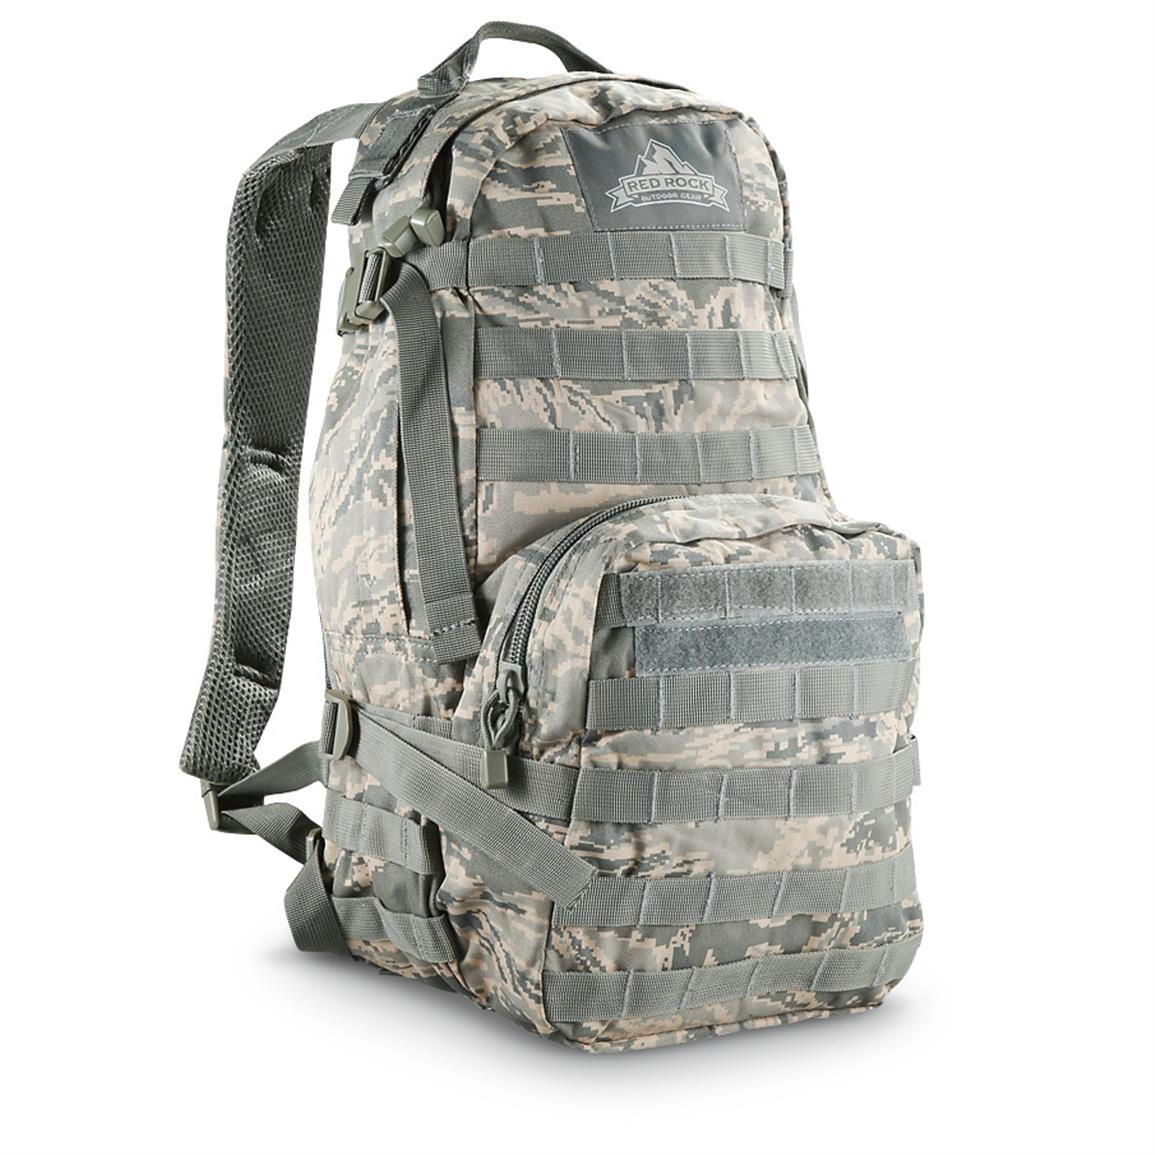 Red Rock Outdoor Gear™ Scout Assault Pack, Army Digital